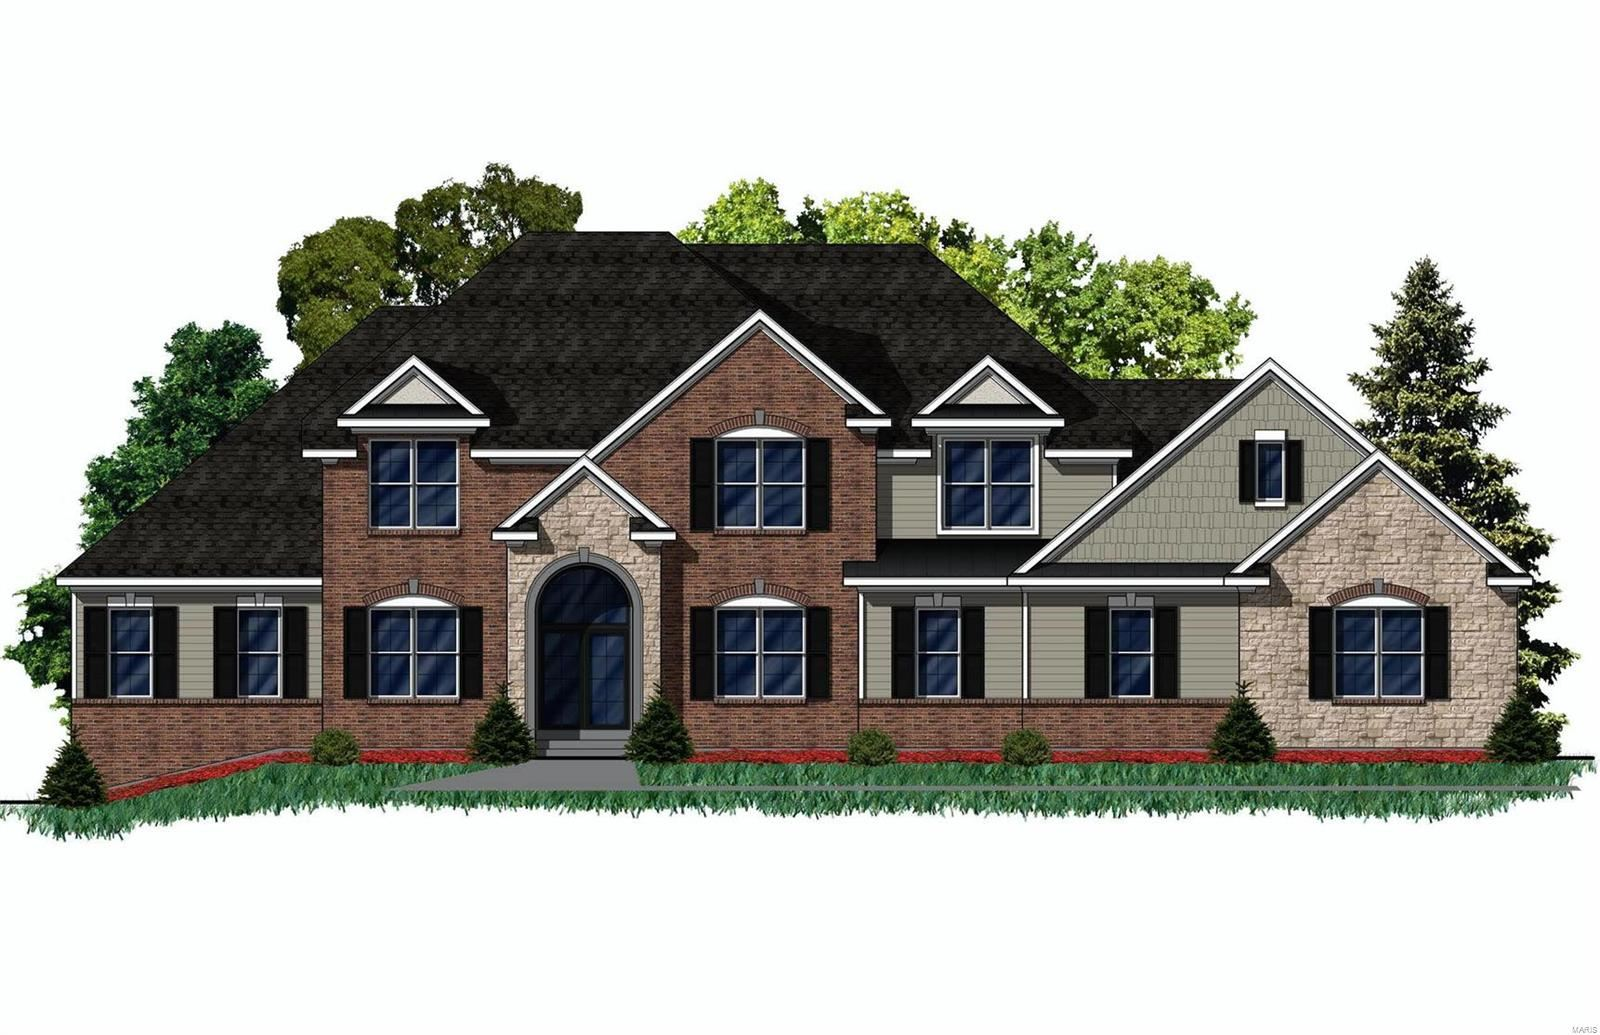 13221 Stone Ct TBB (Lot 1), Town and Country, MO 63131 - MLS#: 20087836